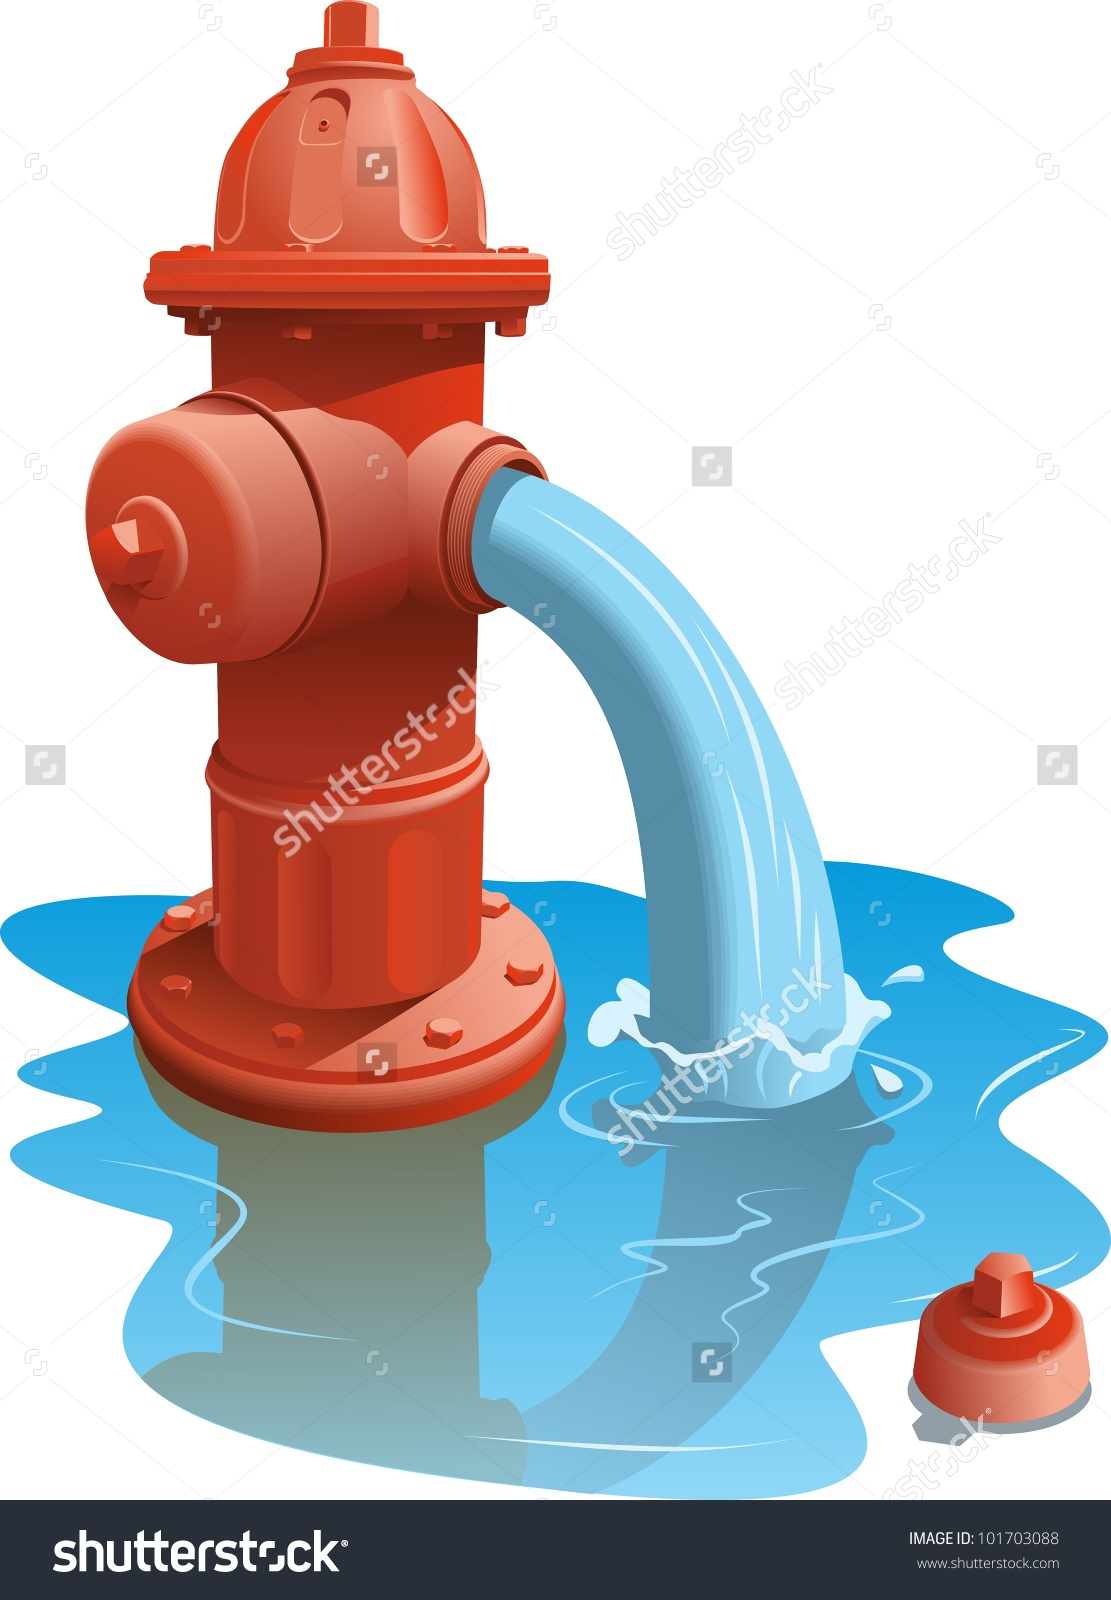 Water hydrant clipart.